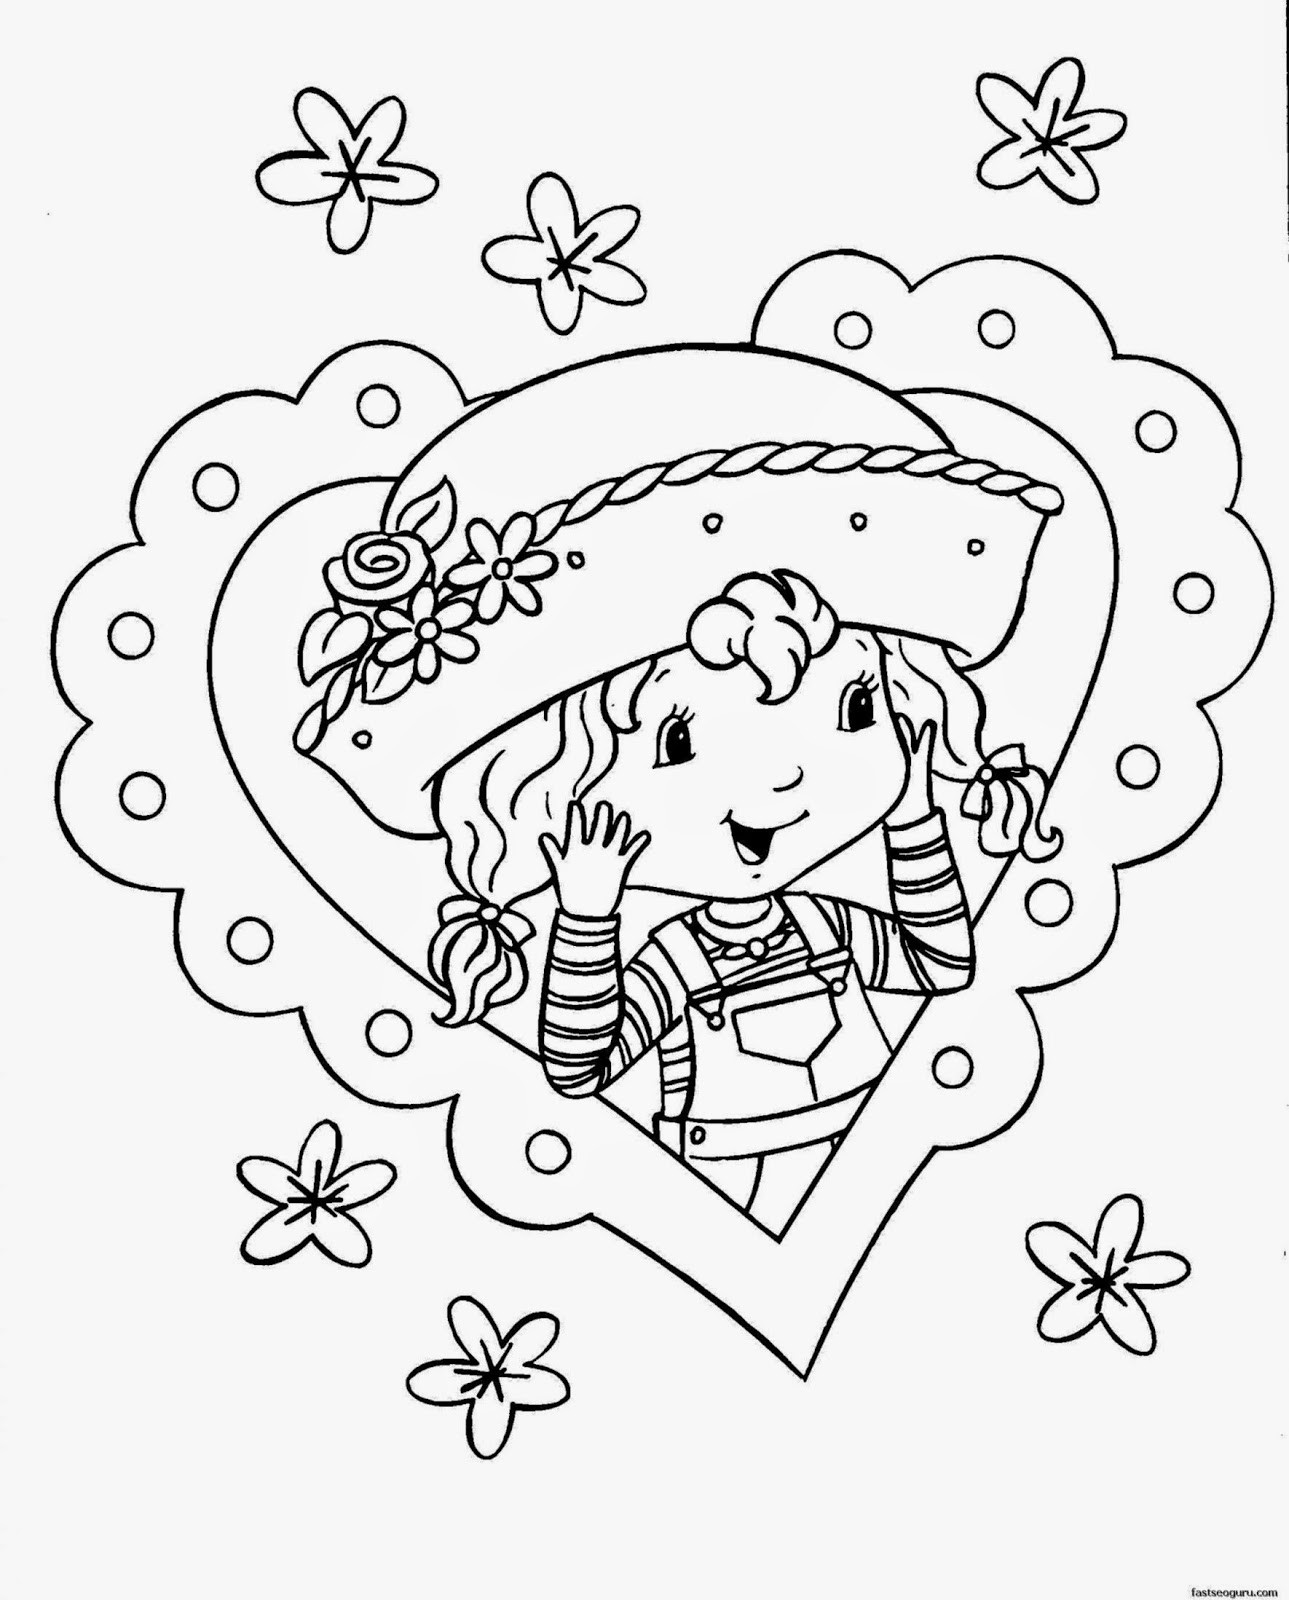 Free Printable Coloring Pages For Girls  Printable Coloring Pages For Girls